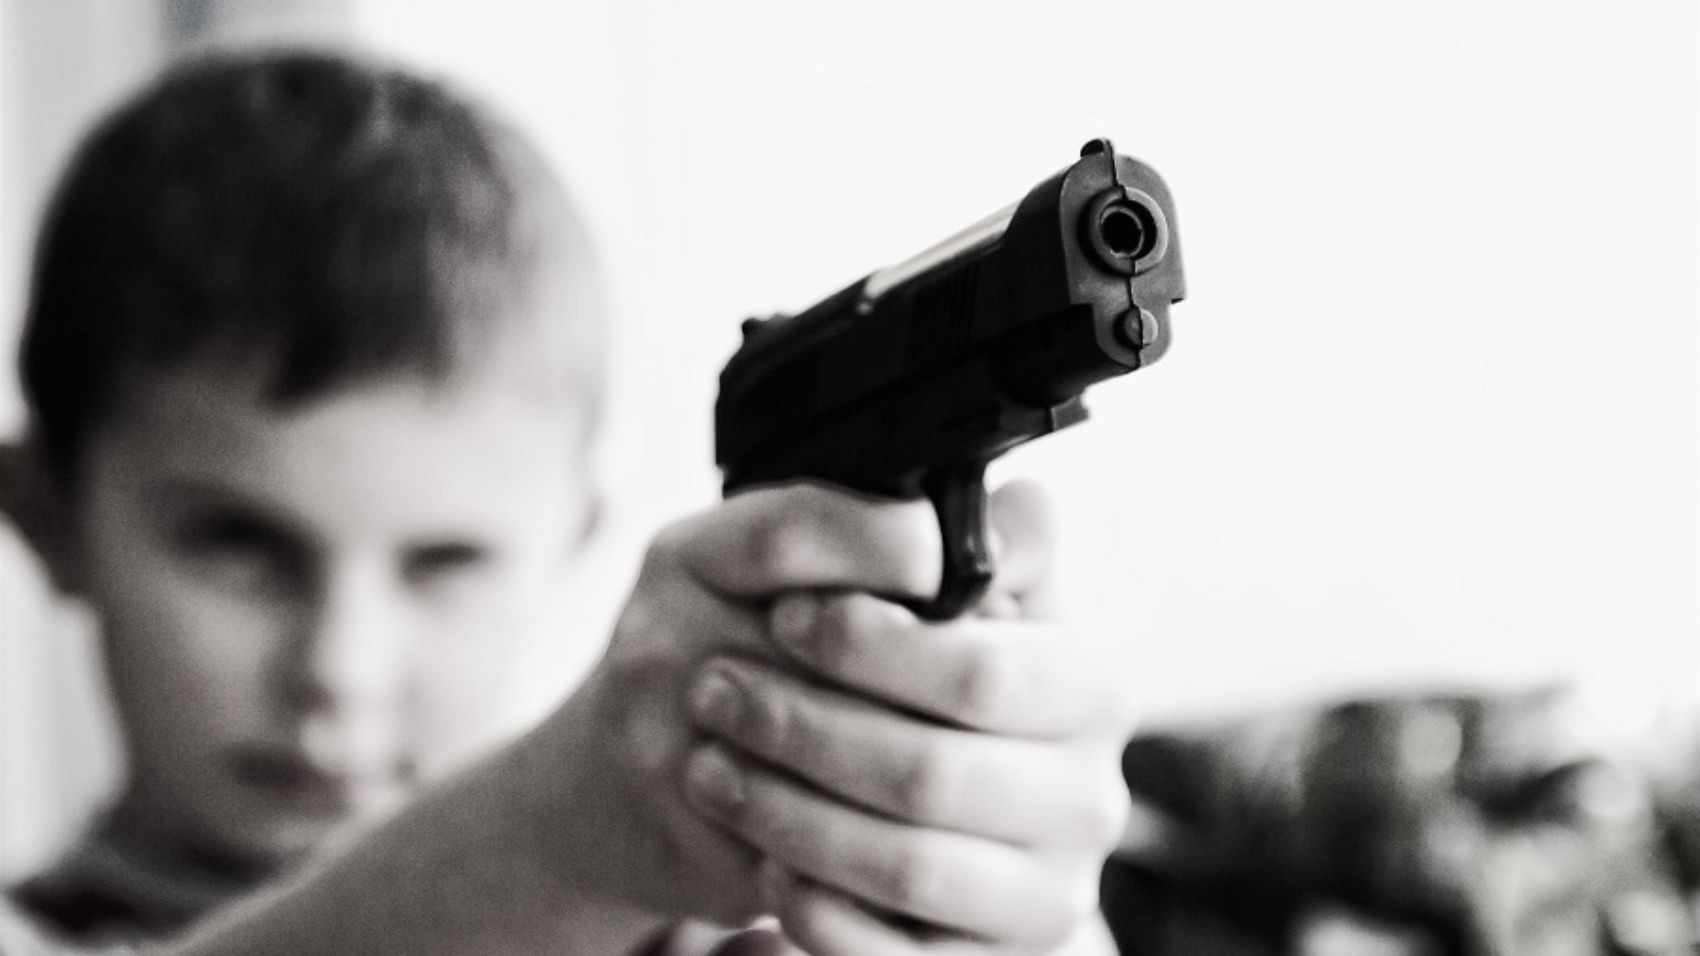 How Passionate Shooters Can Prevent Kids Using Their Guns by Accident